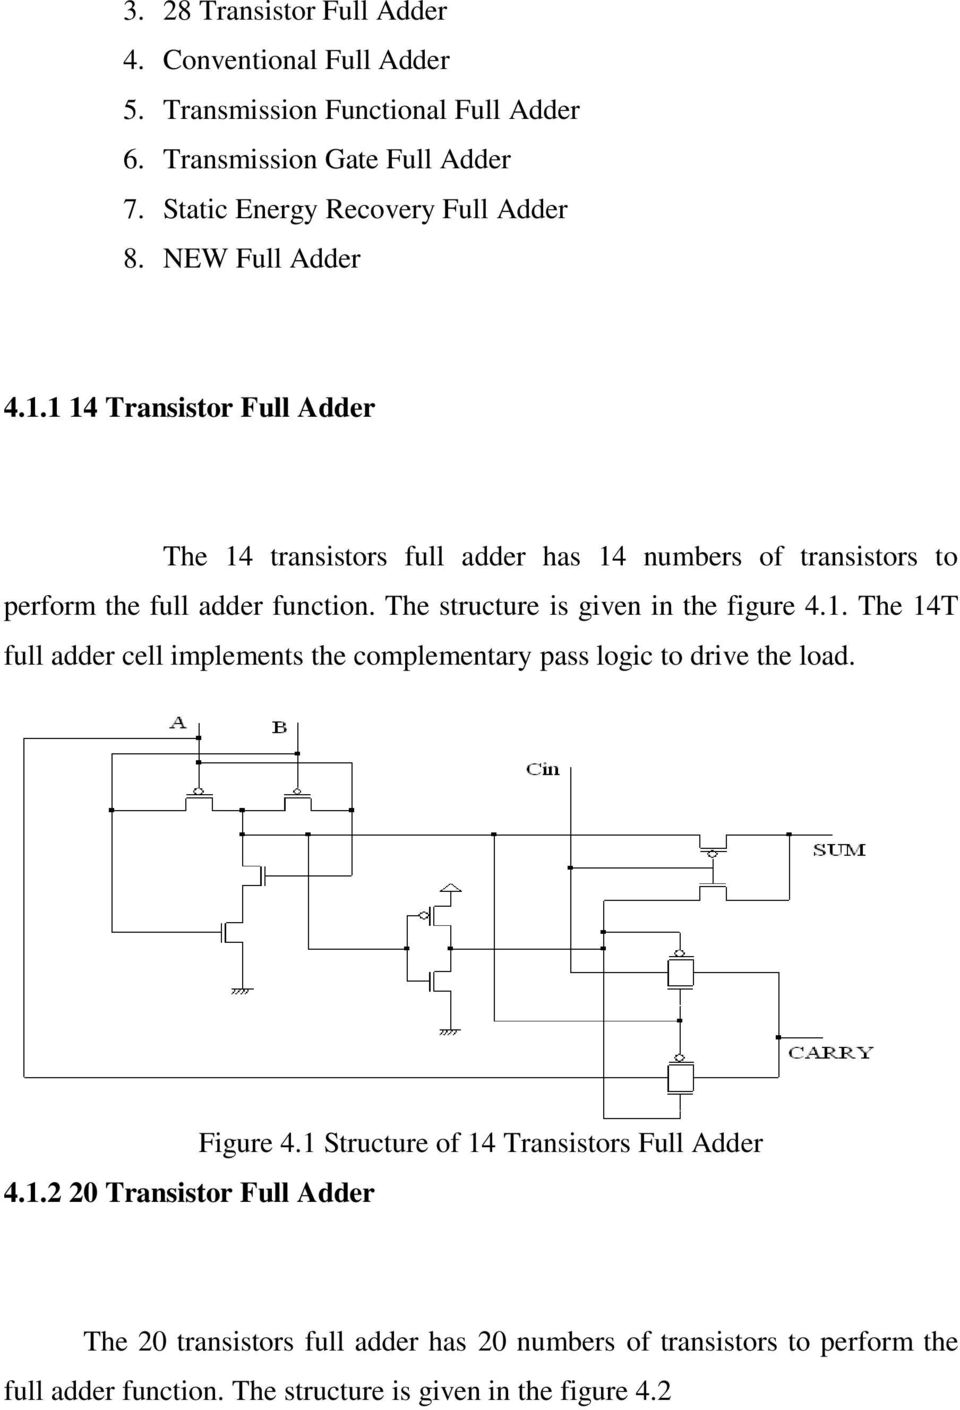 1 14 Transistor Full Adder The 14 transistors full adder has 14 numbers of transistors to perform the full adder function. The structure is given in the figure 4.